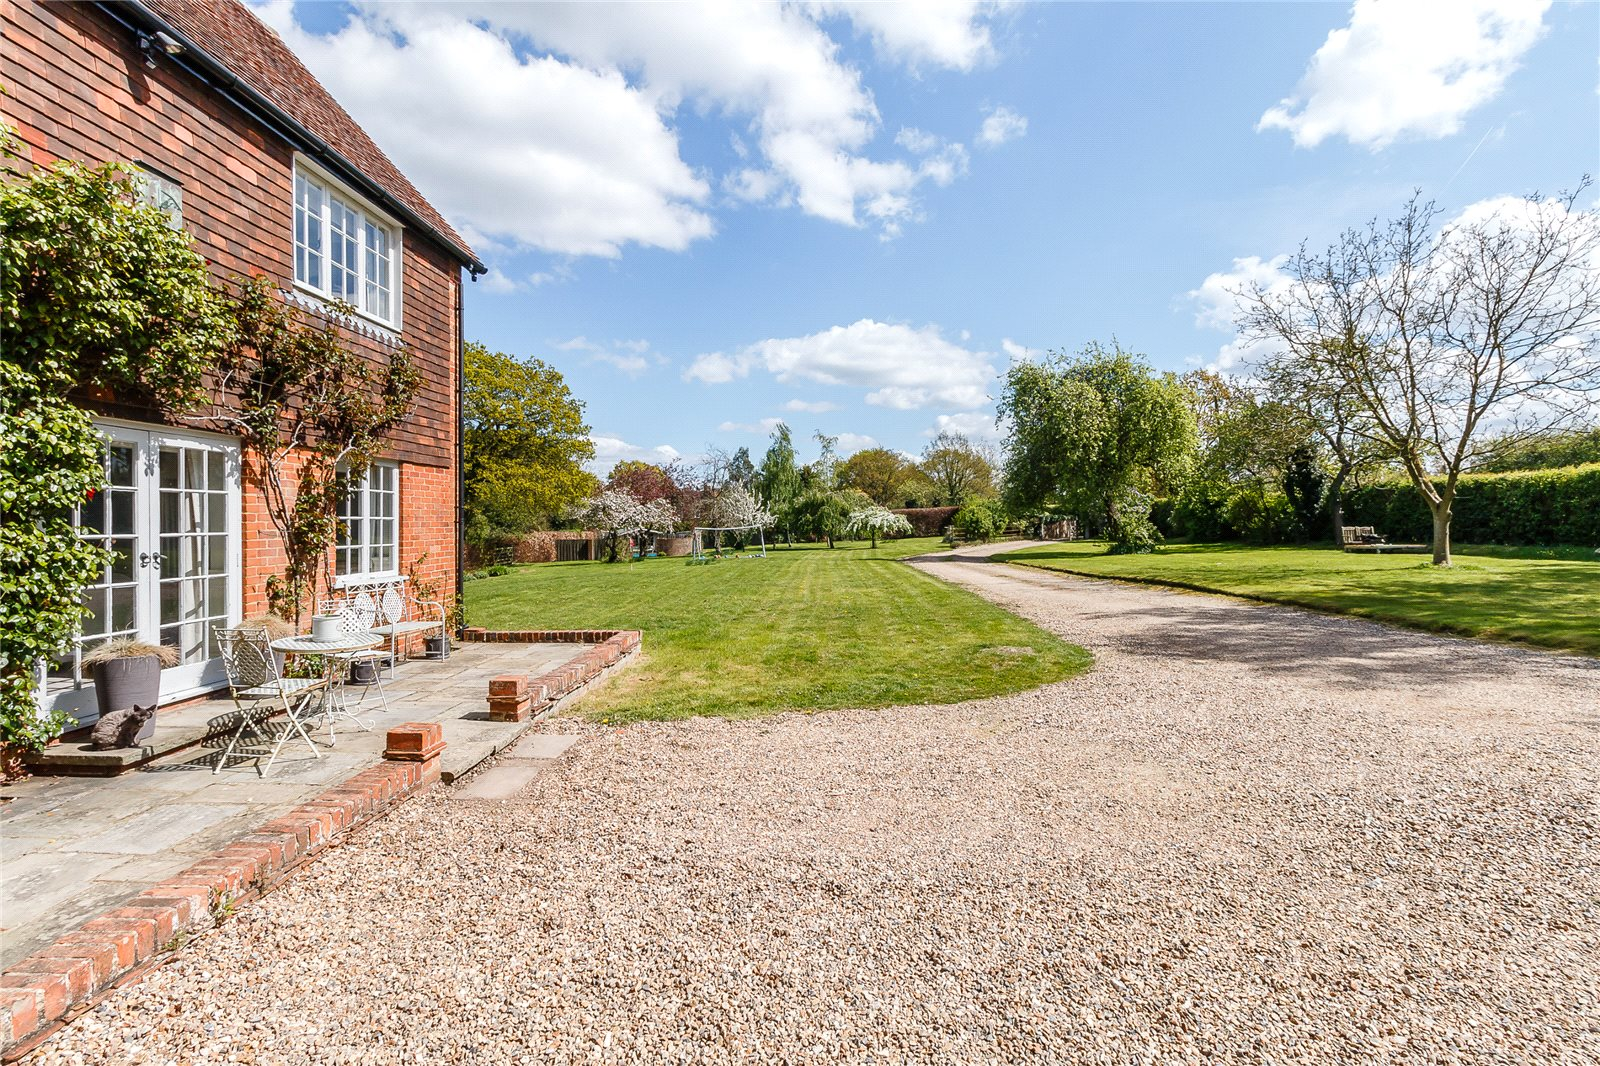 Additional photo for property listing at Sheepcote Lane, Paley Street, Nr Maidenhead, Berkshire, SL6 Berkshire, Ingiltere